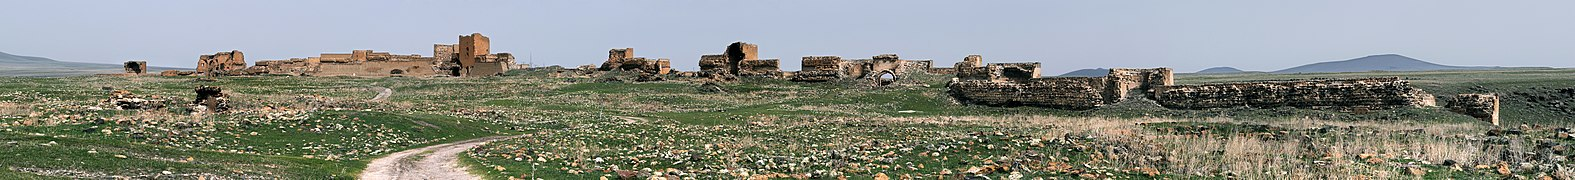 20110419 Ani North Walls Turkey Panorama.jpg